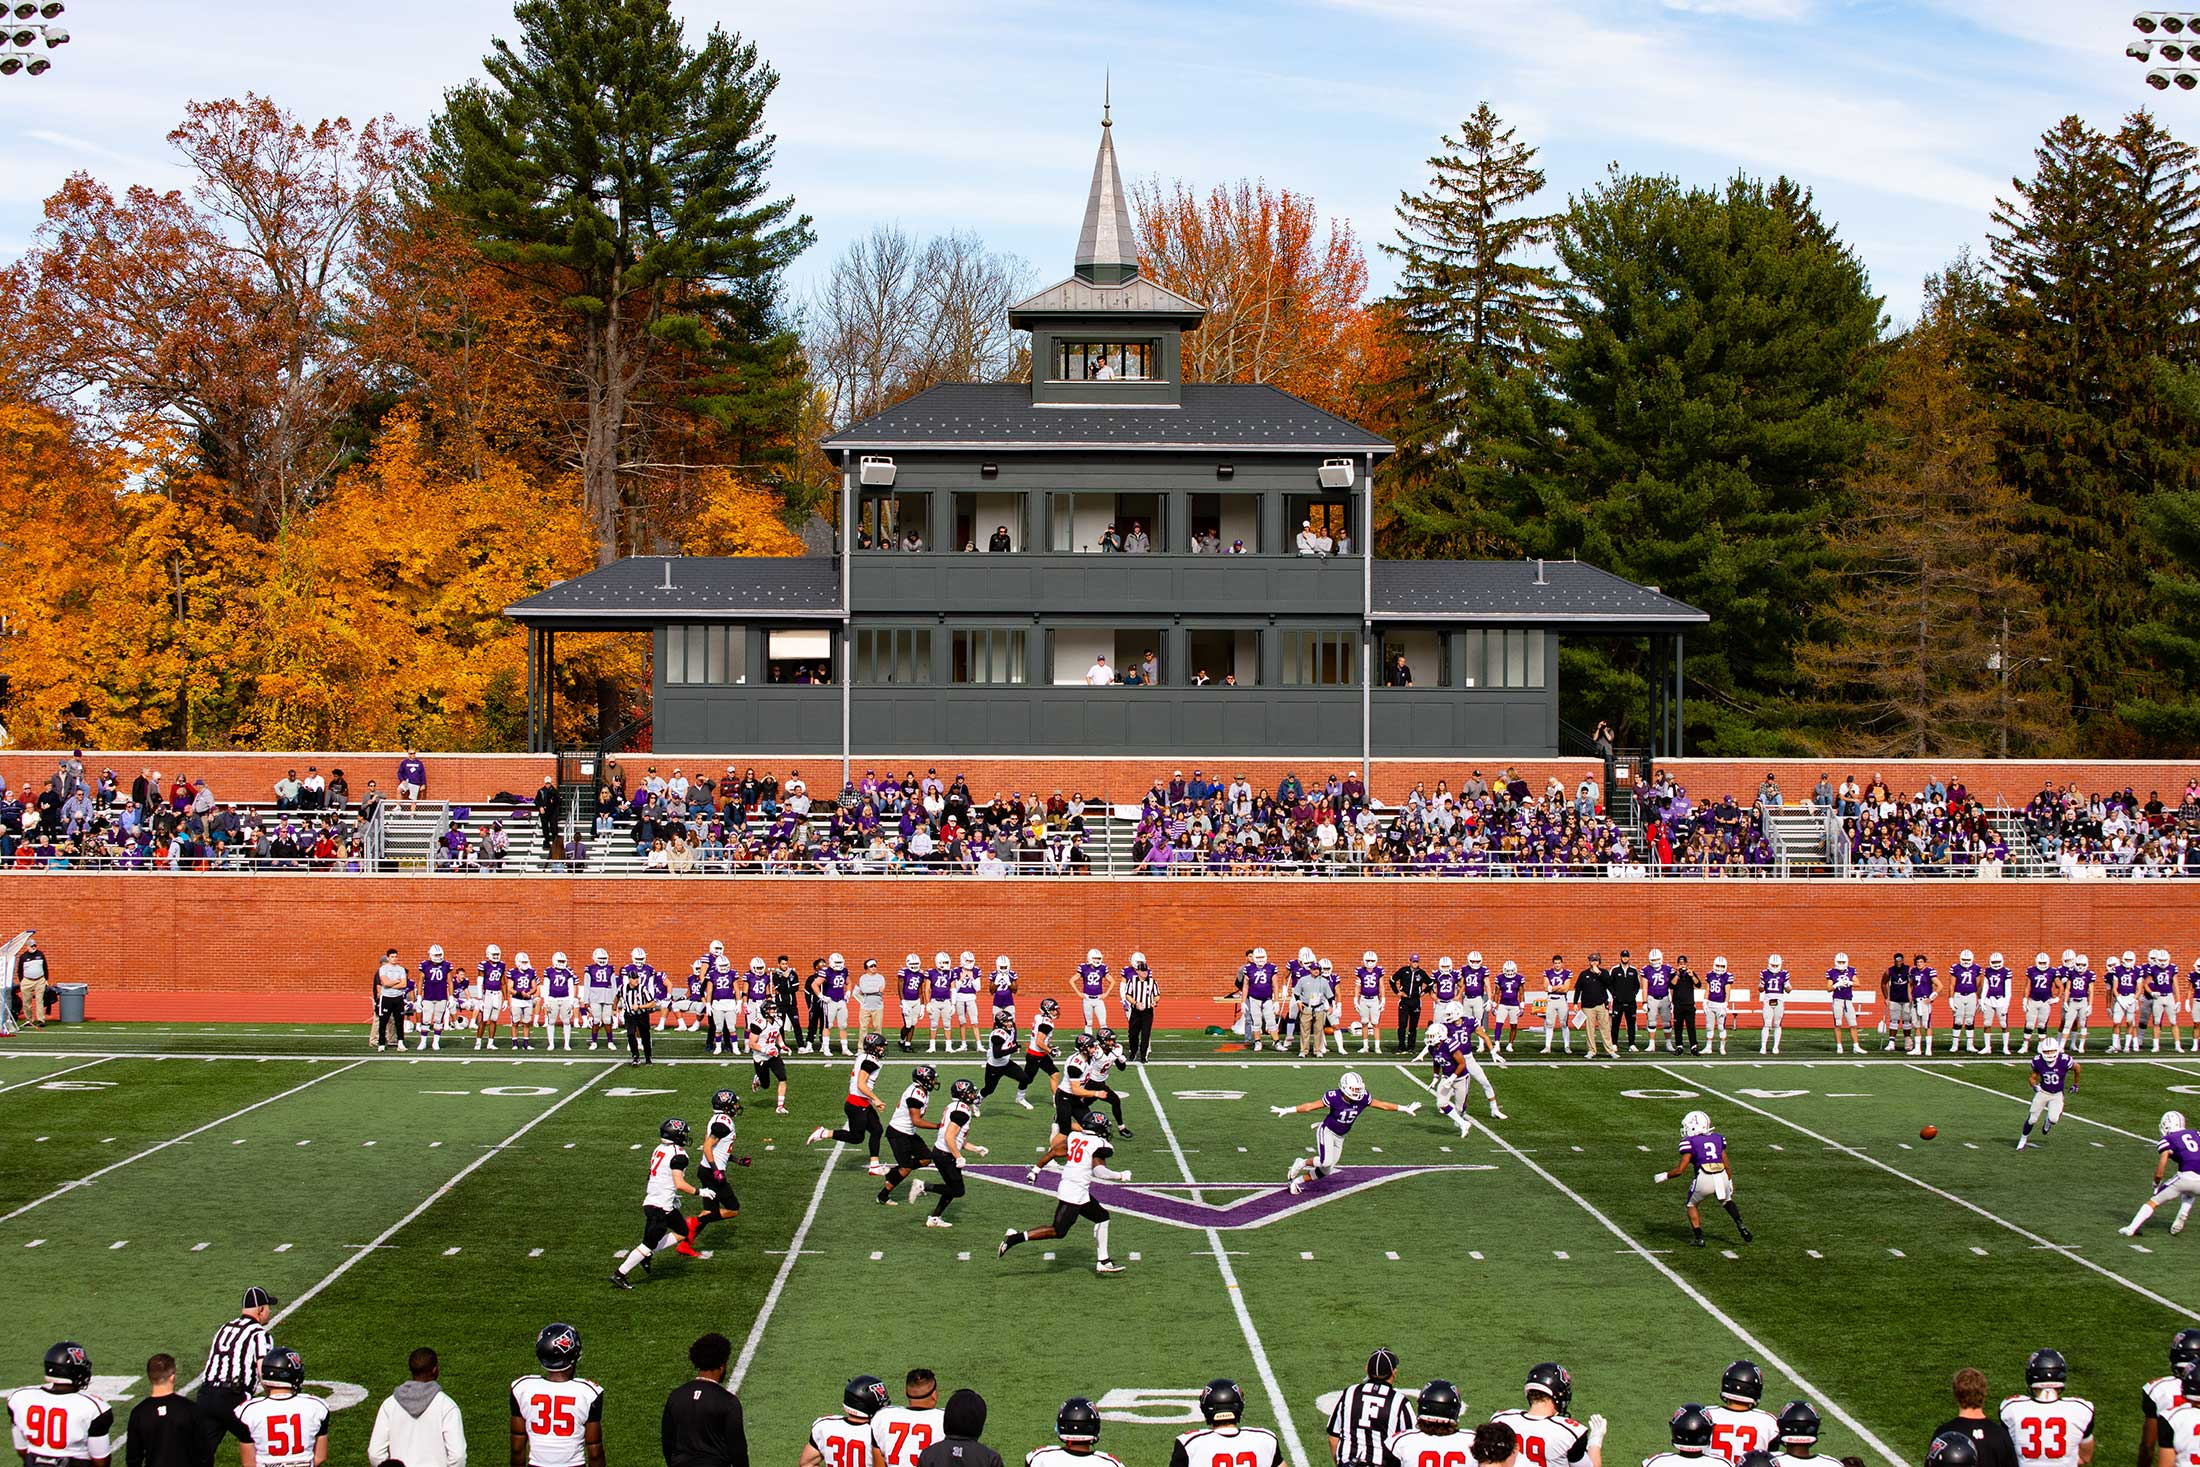 Amherst College's football team in action